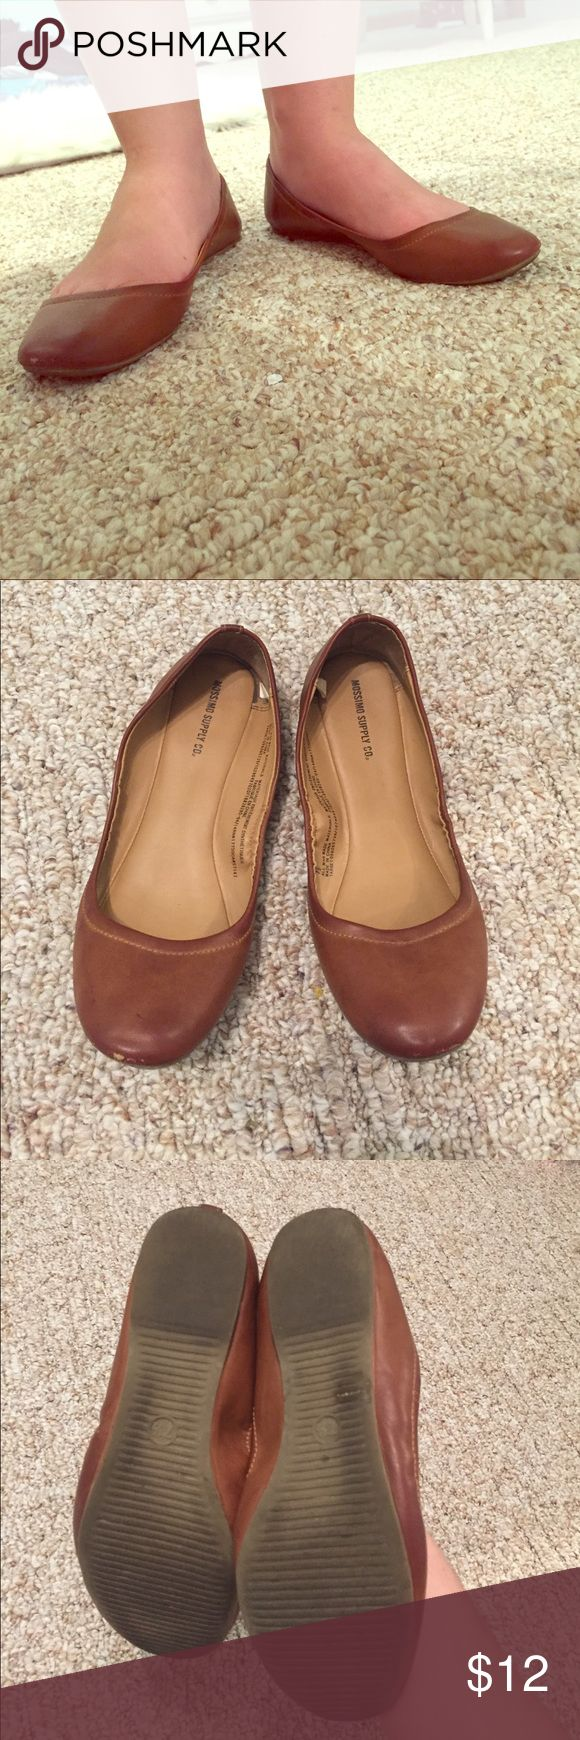 Brown/Camel ballet flats A staple for any wardrobe; these brown ballet flats can be worn with anything! They're perfect for work or just casual lunches with friends. Mossimo Supply Co. Shoes Flats & Loafers